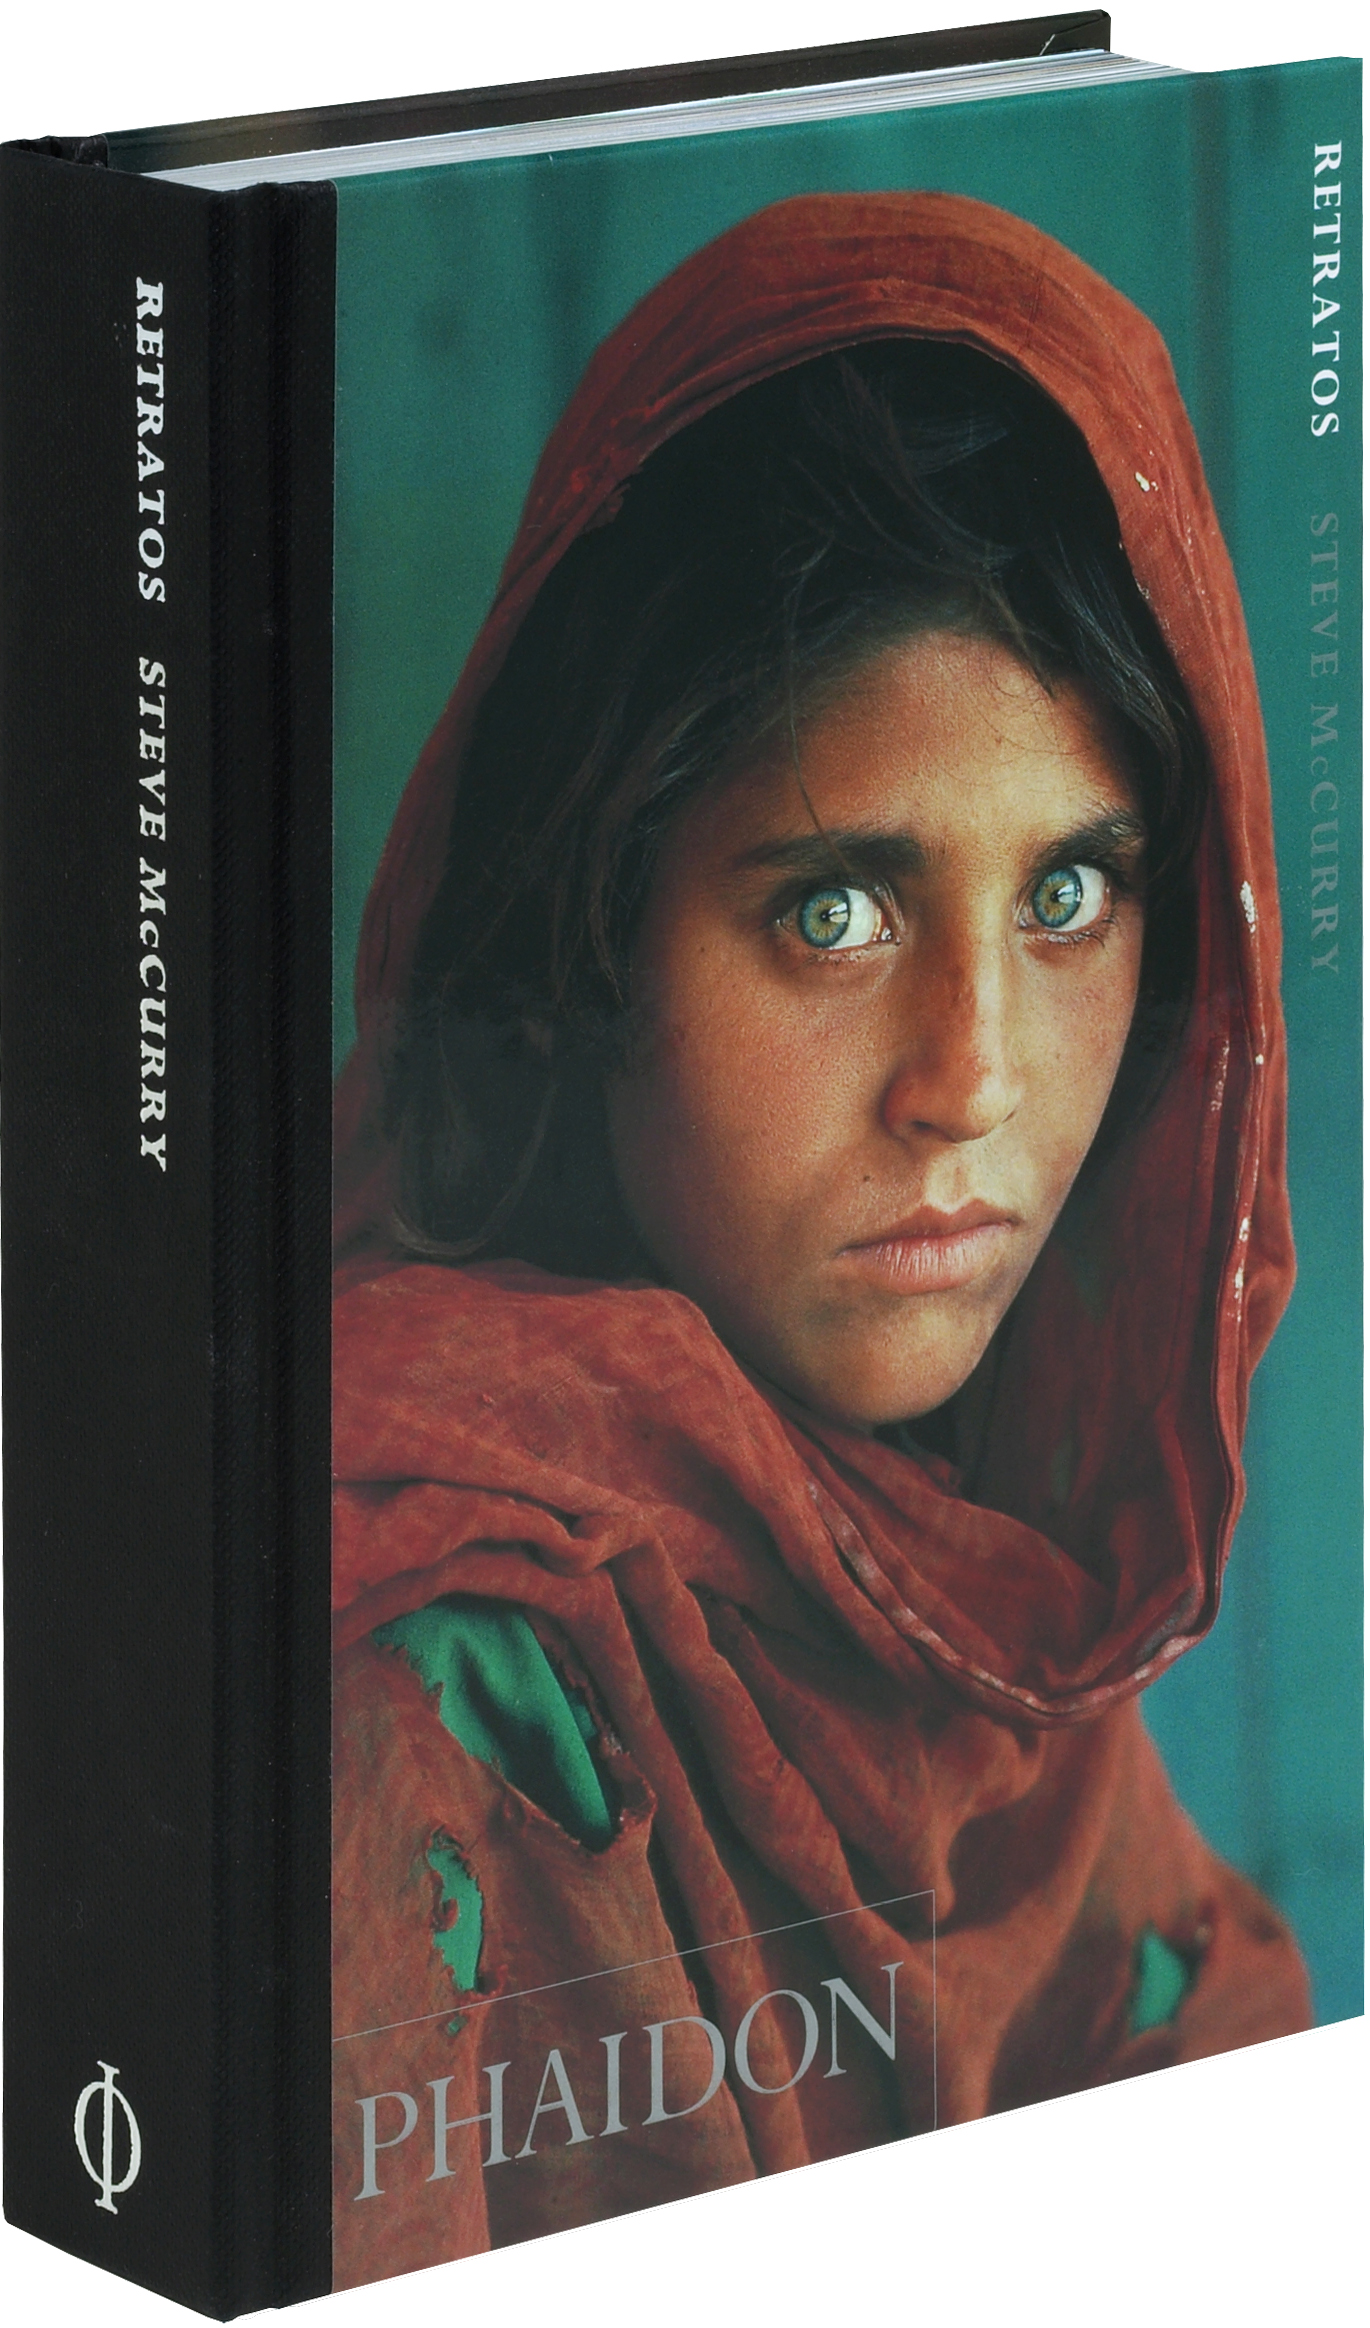 Retratos - McCurry Steve